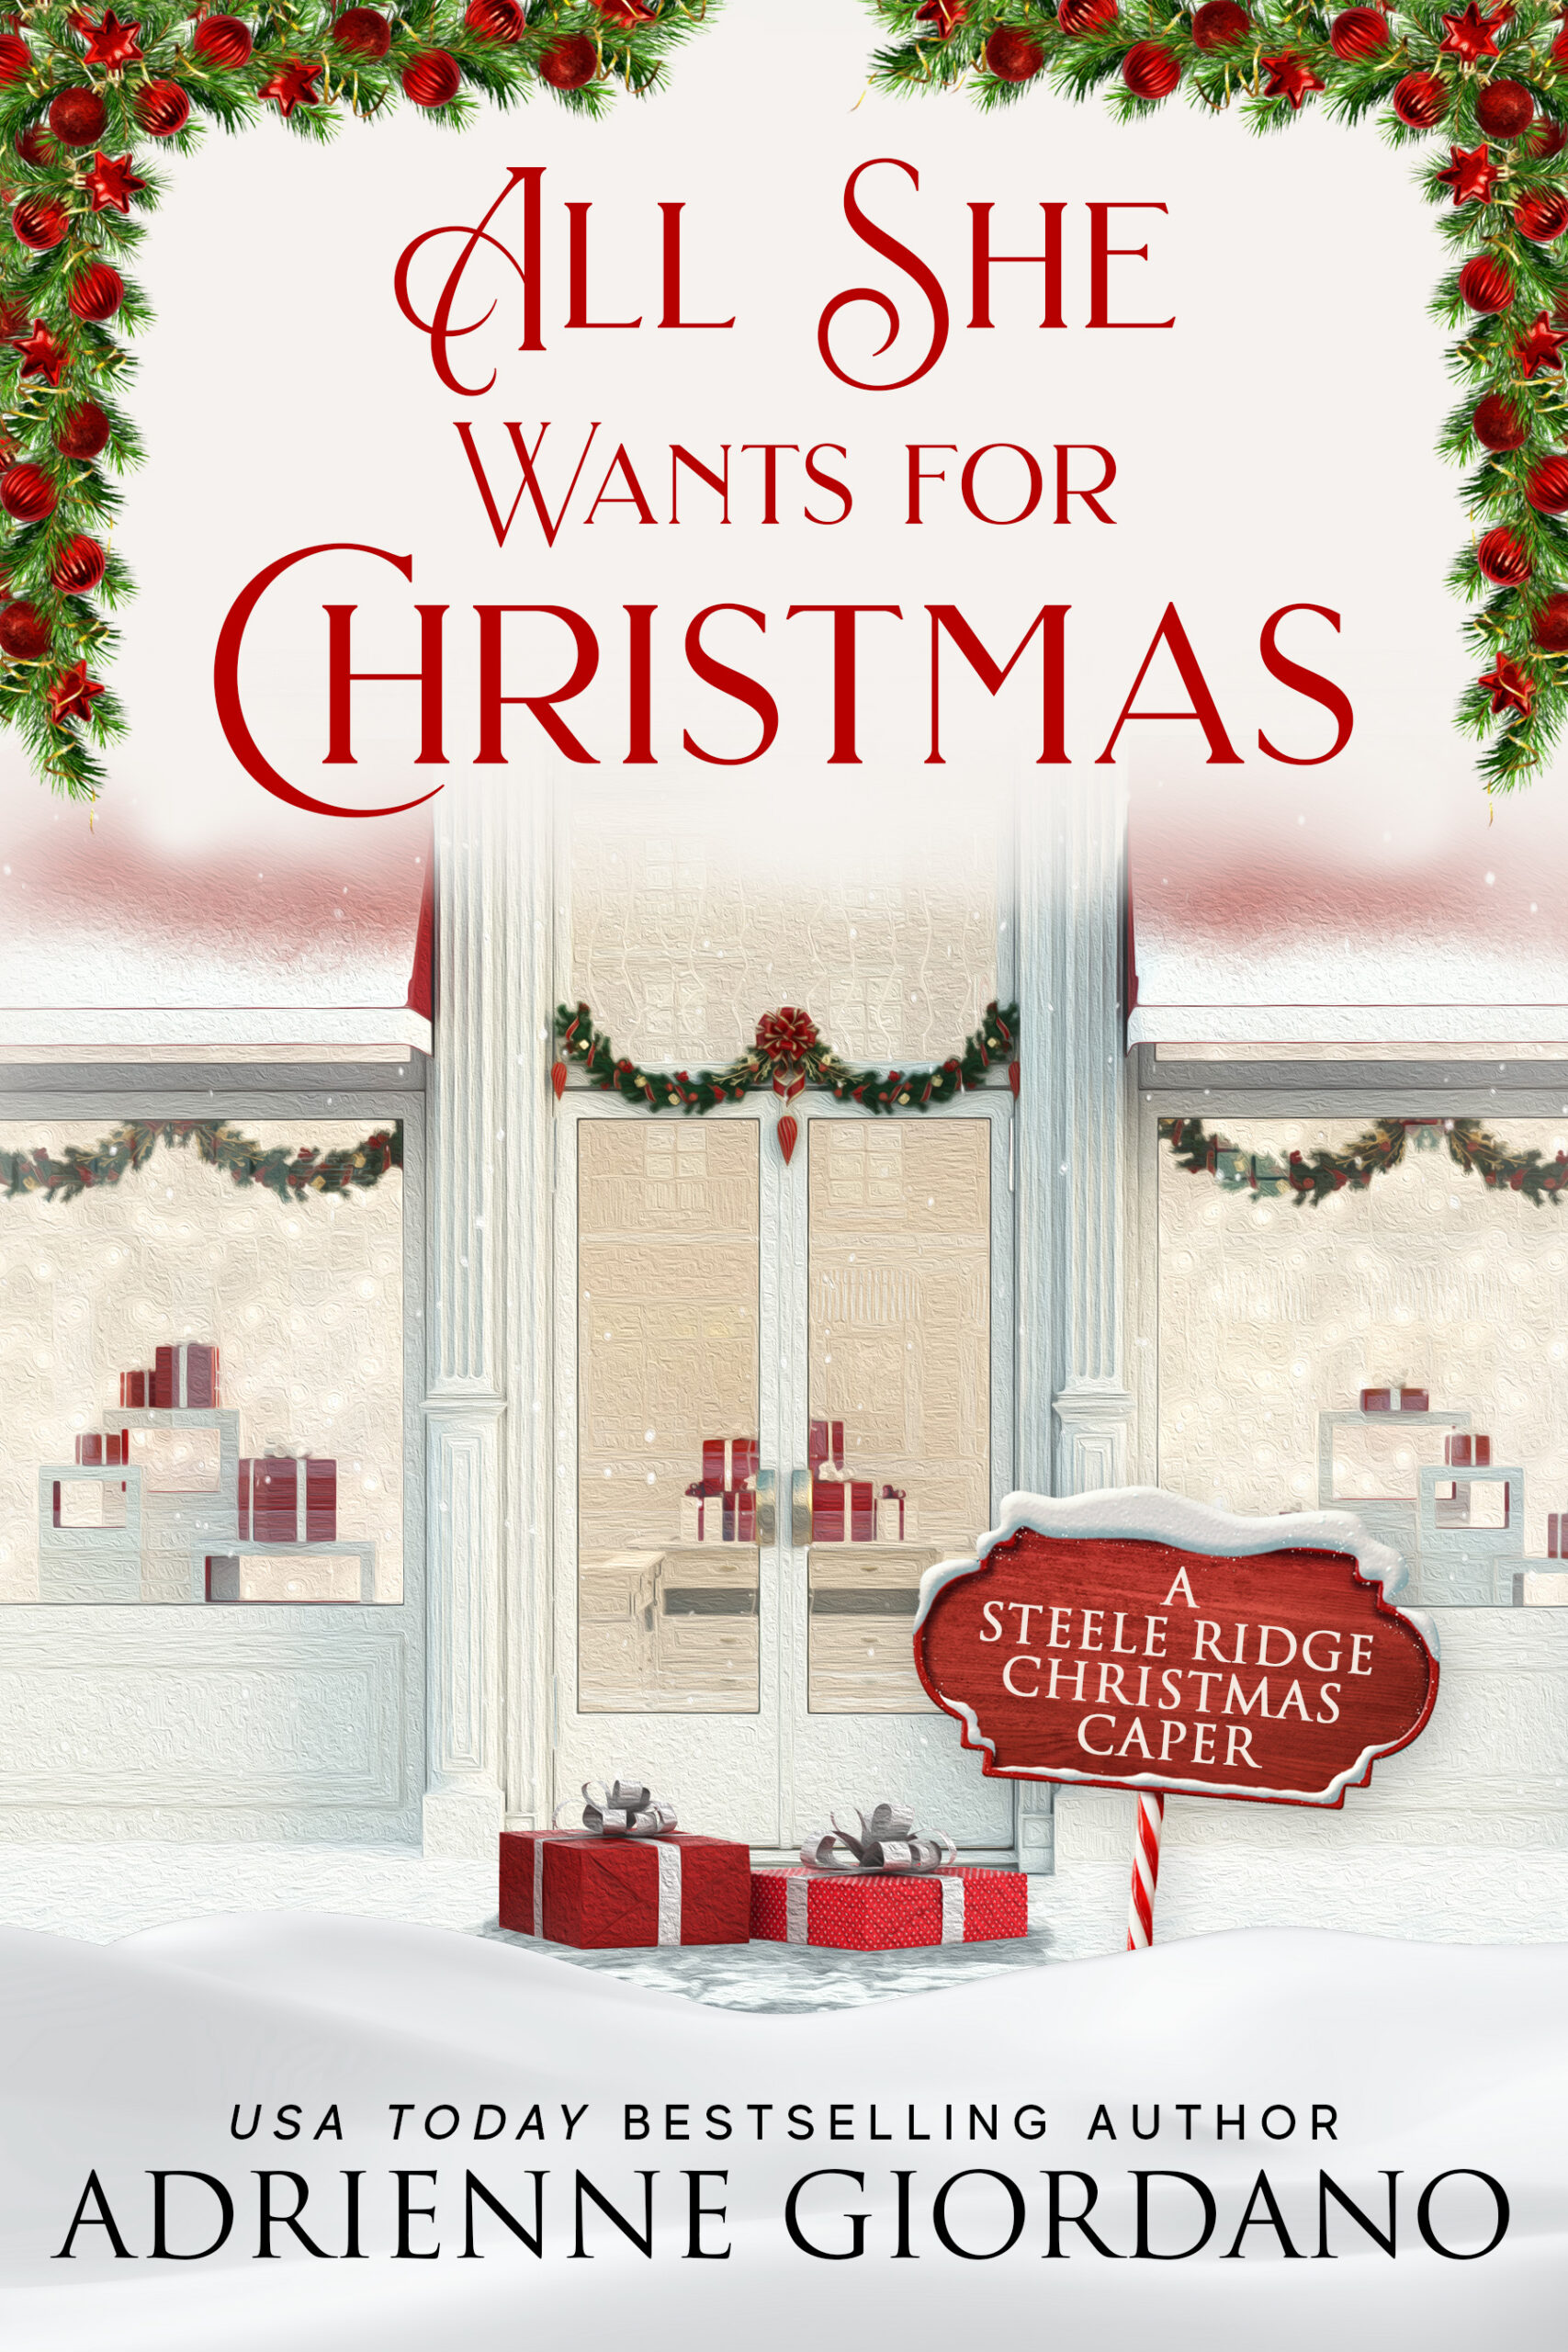 All She Wants for Christmas by Adrienne Giordano cover